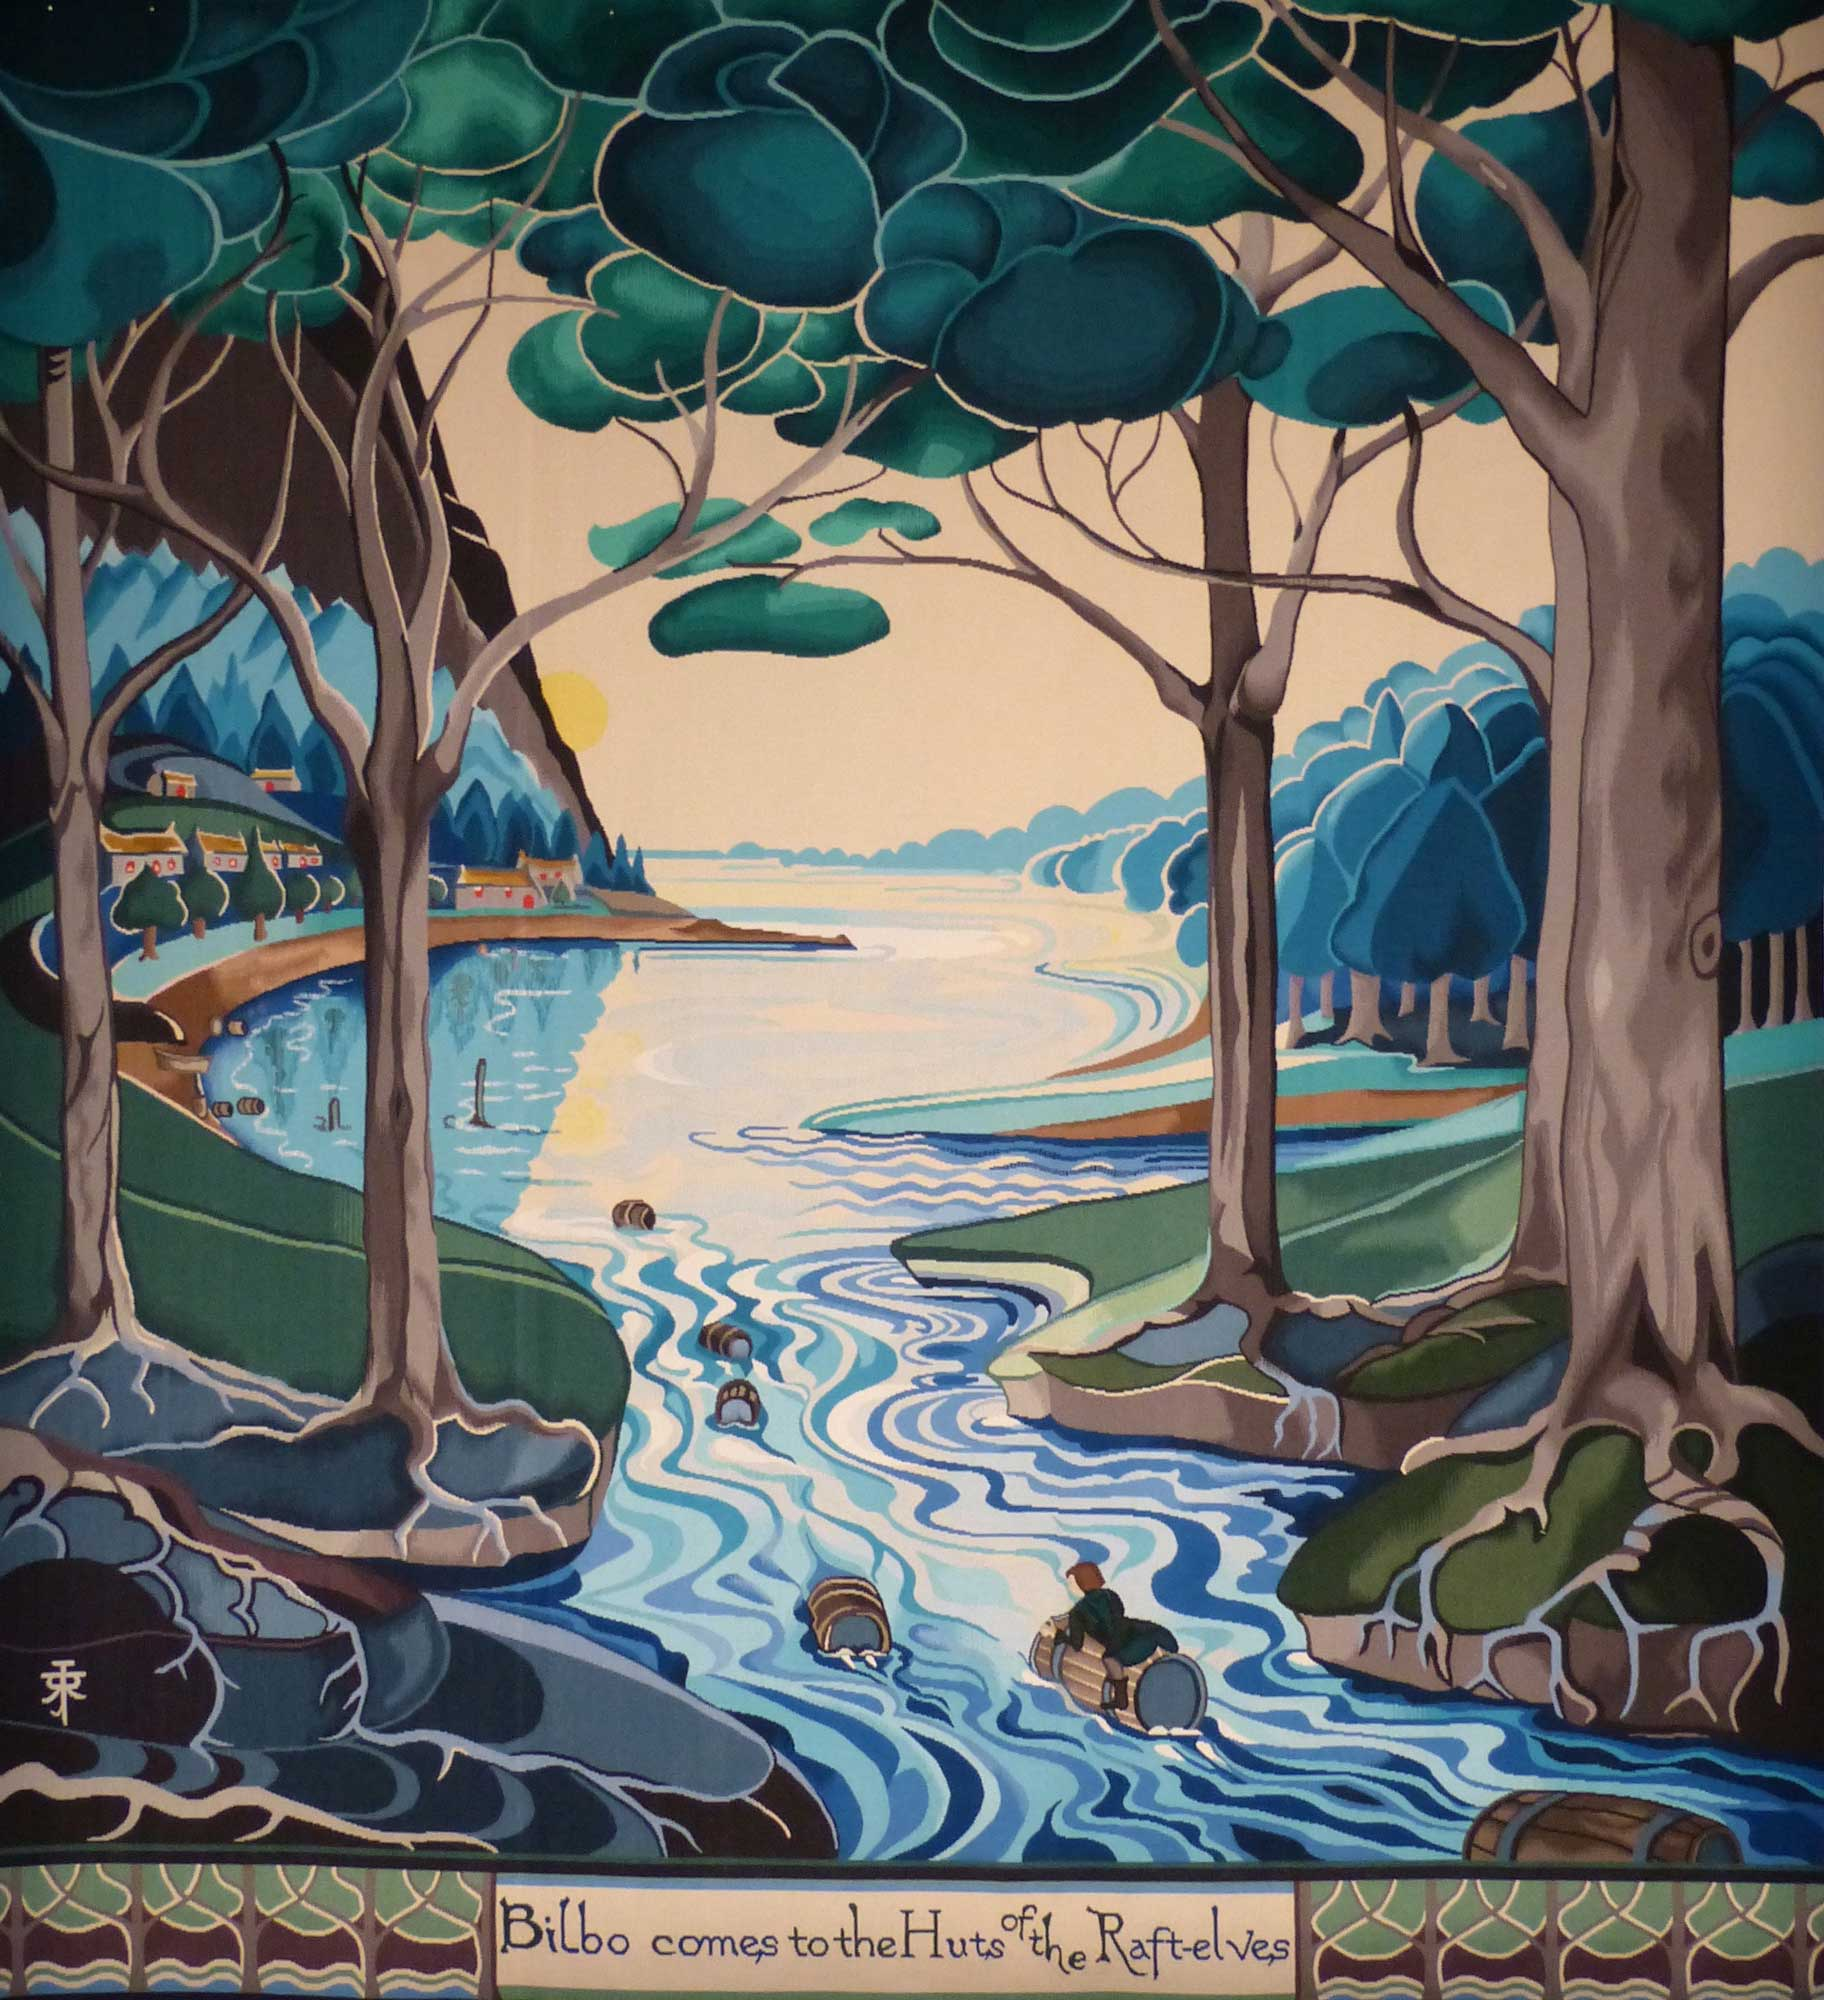 Bilbo Comes to the huts of the raft-Elves - Au busson tisse Tolkien